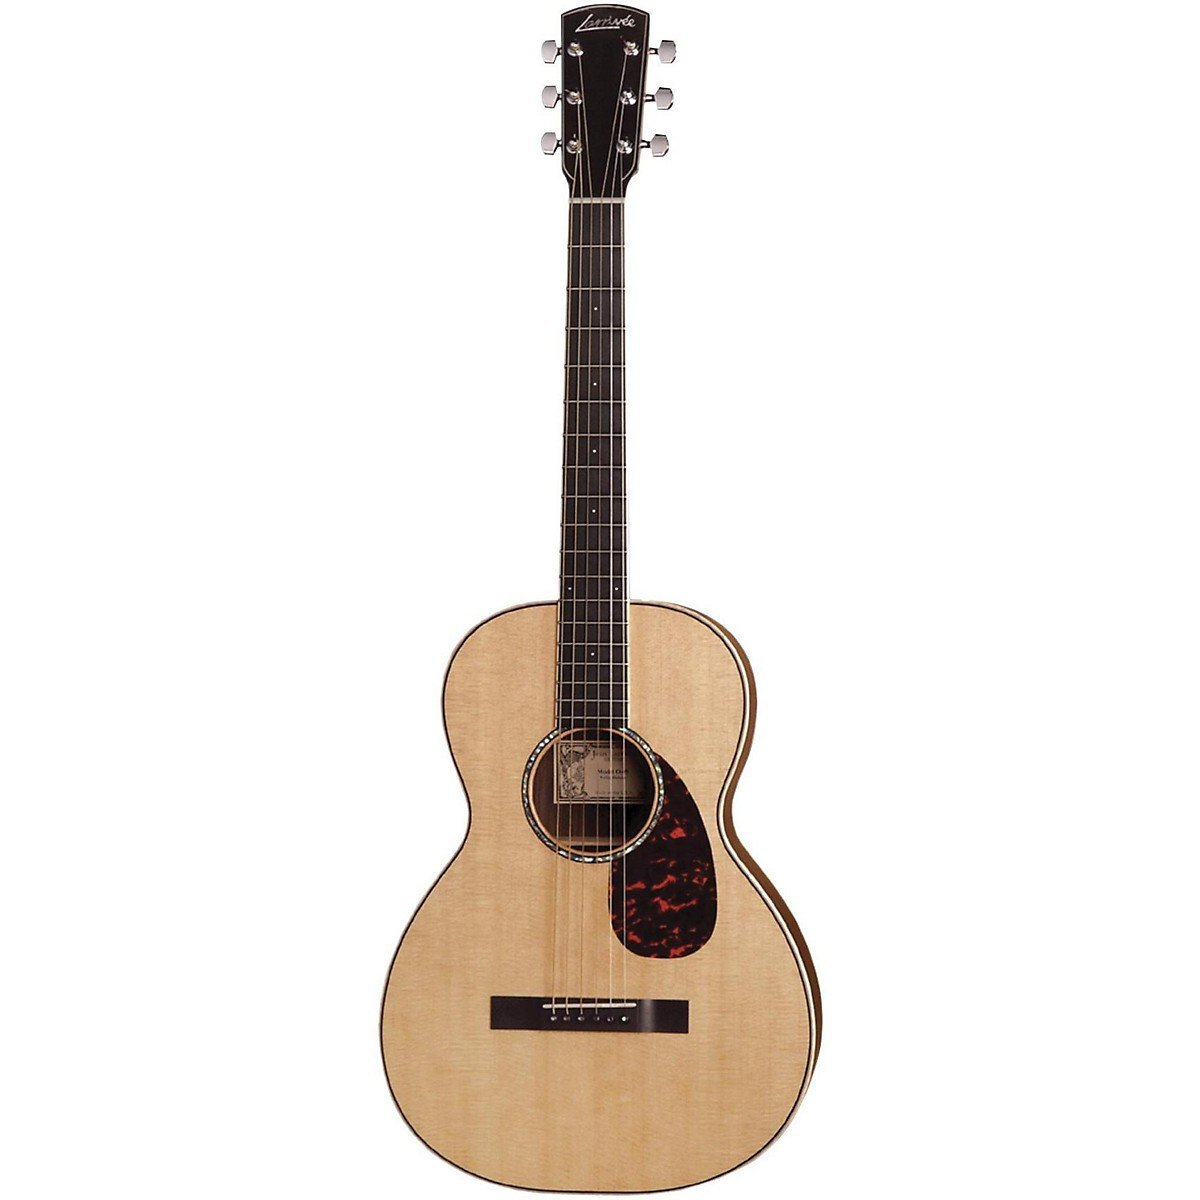 Larrivee P-09 Rosewood Select Series Parlour Acoustic Guitar Natural Rosewood